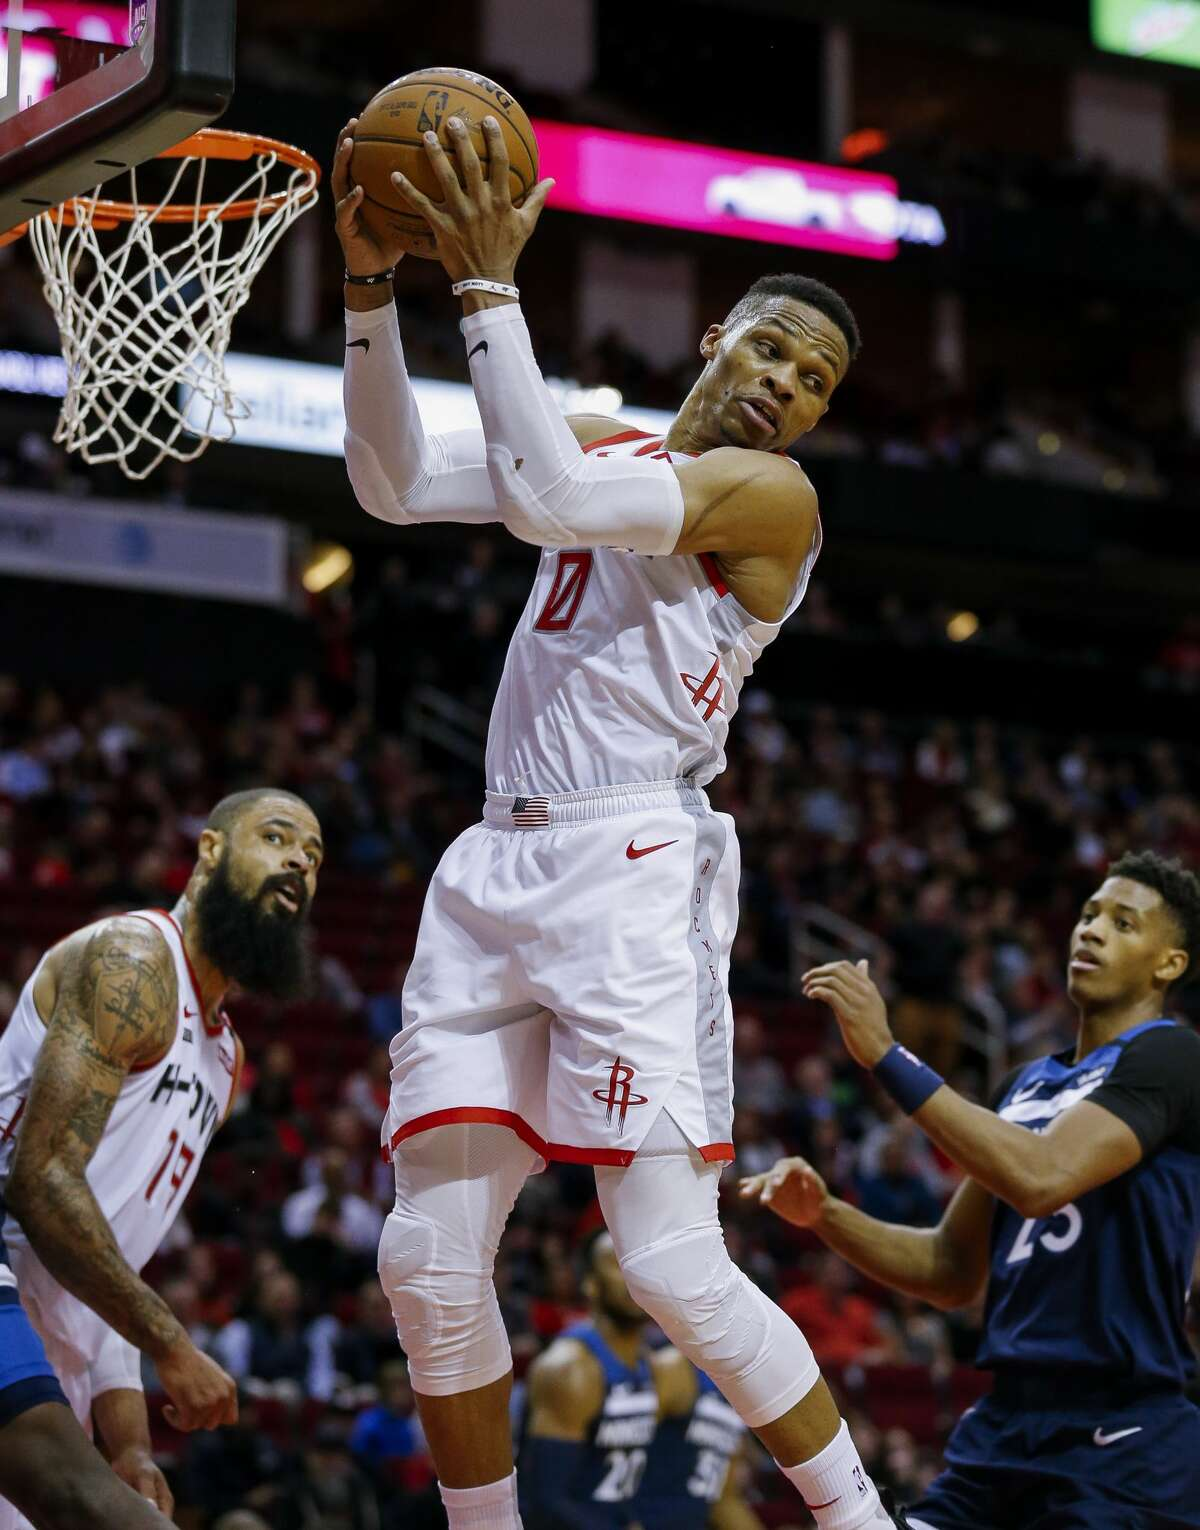 Houston Rockets guard Russell Westbrook (0) rebounds the ball against the Minnesota Timberwolves during the first half of an NBA game at the Toyota Center Saturday, Jan. 11, 2020, in Houston. The Rockets won 139-109.